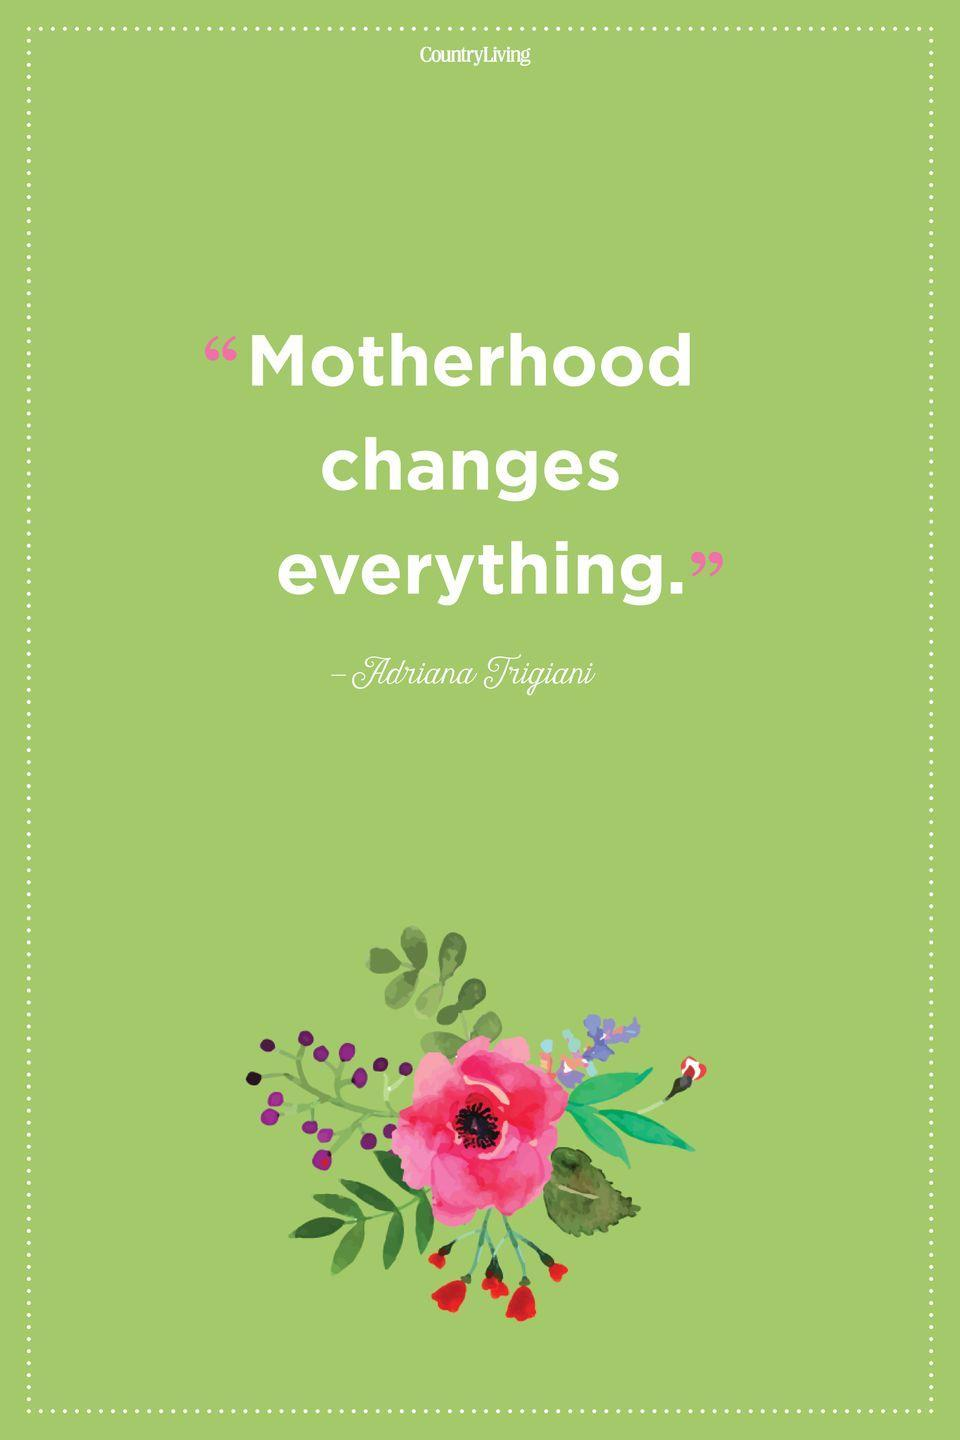 "<p>""Motherhood changes everything.""</p>"